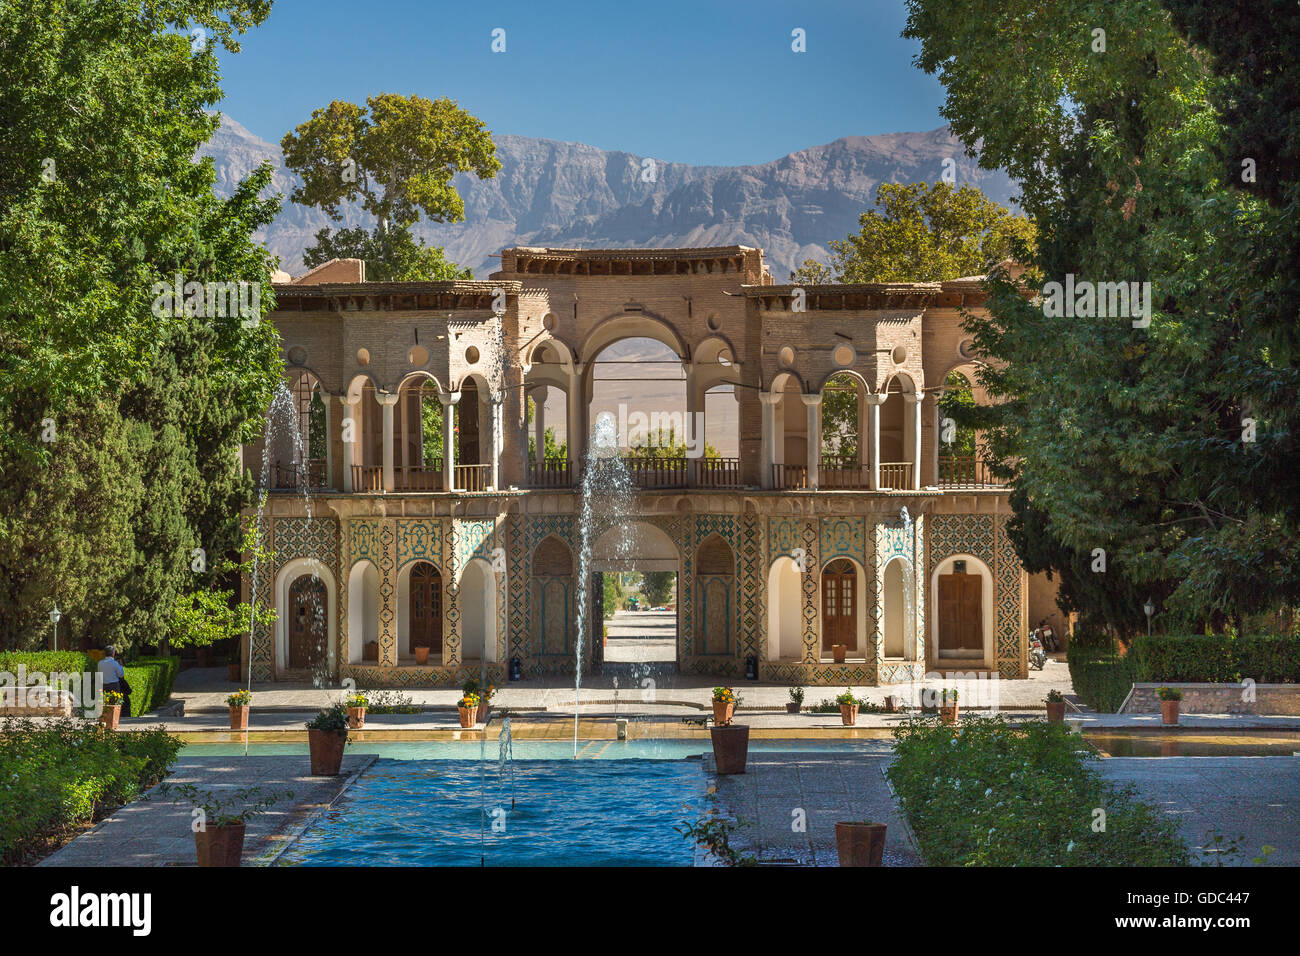 Iran,Mahan City,(near Kerman City9,Shazde Garden (Prince garden),UNESCO,world heritage, - Stock Image